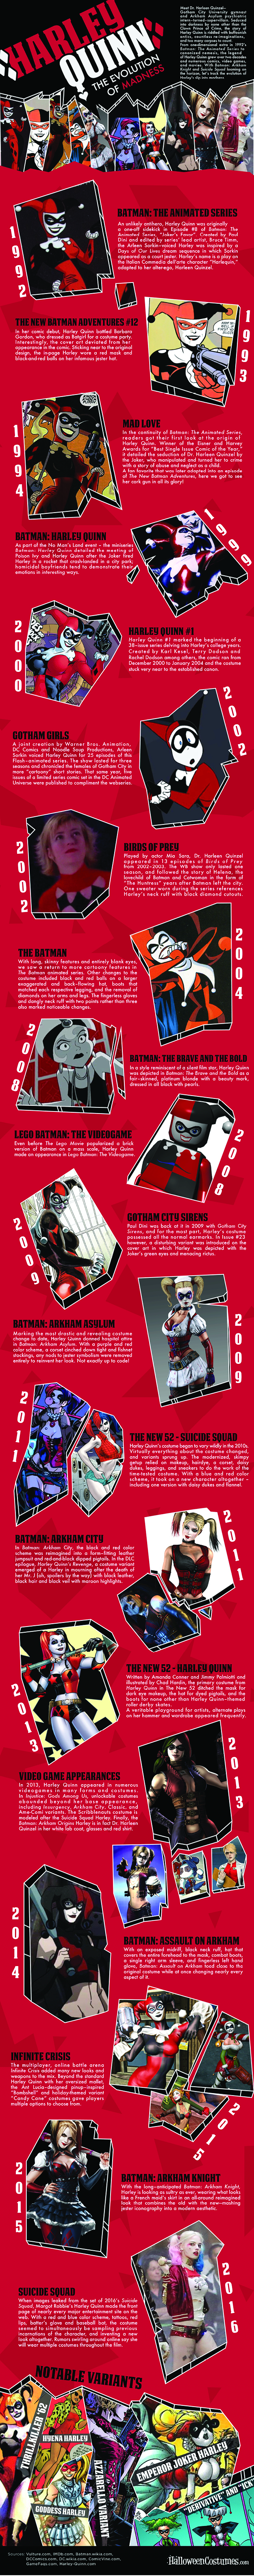 Harley Quinn Evolution Infographic